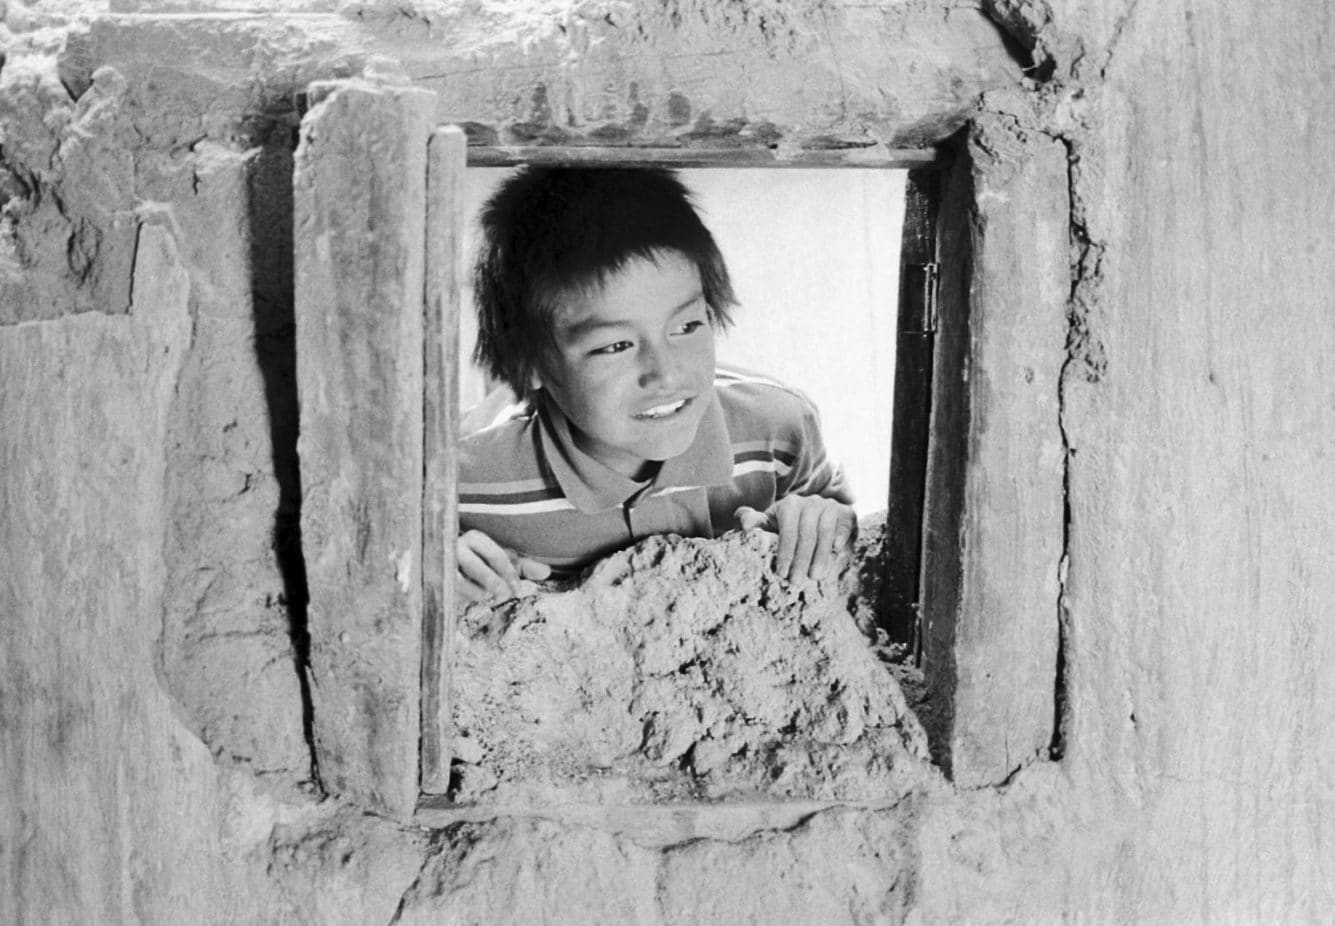 Joel Orozco, Beyond the Mask: Child Looking out of Window